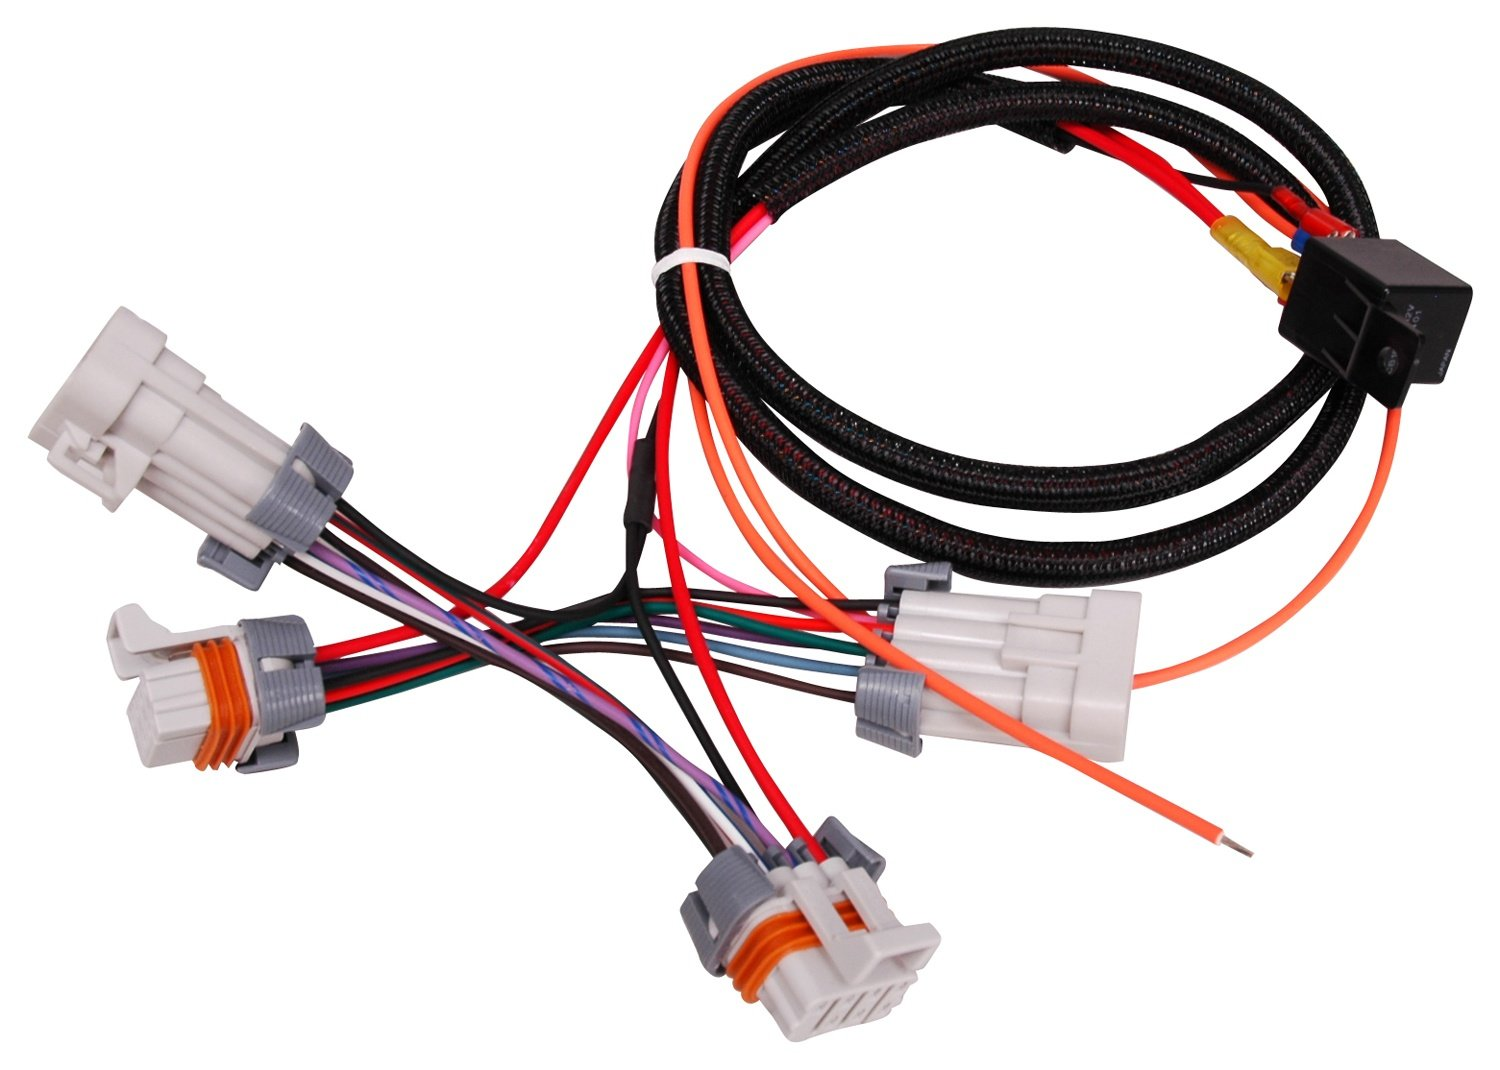 7134eu4G1cL._SL1500_ amazon com msd 88867 ls coil power upgrade harness automotive ls coil wiring harness at gsmportal.co